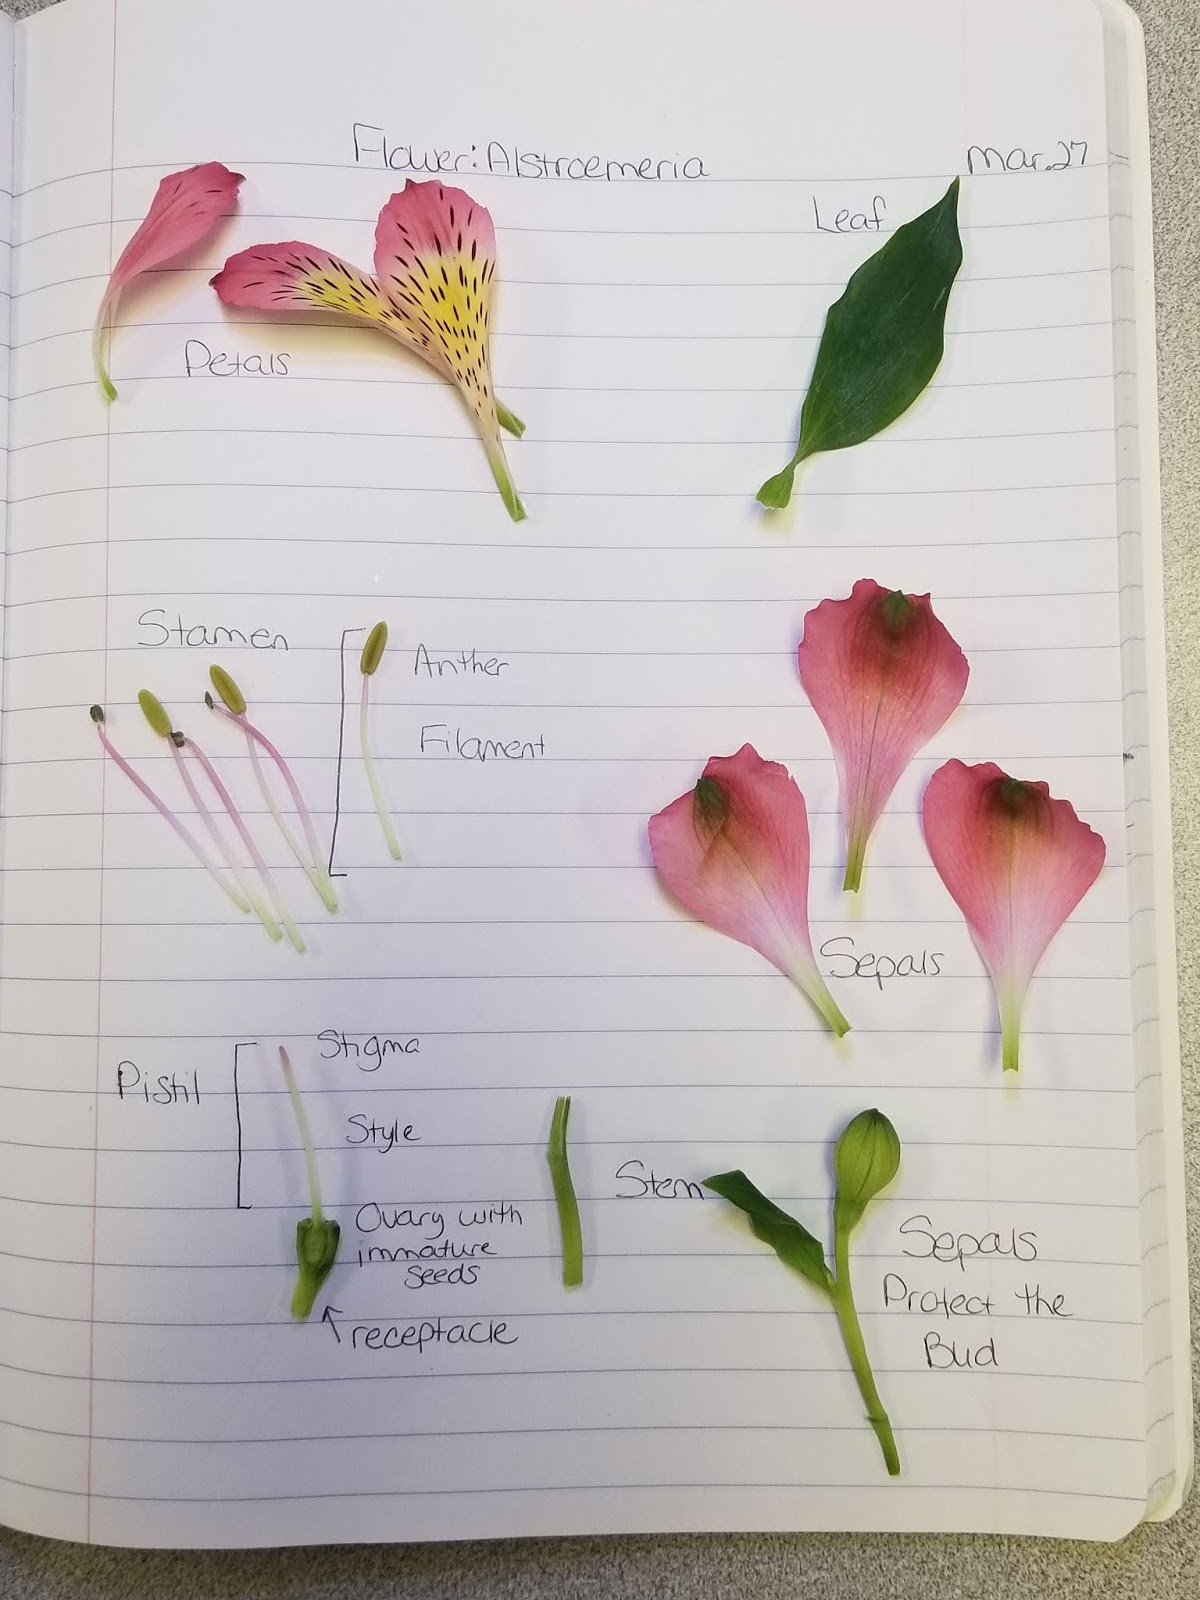 Zephyr's Little Pond: CPALMS: Flower Dissection